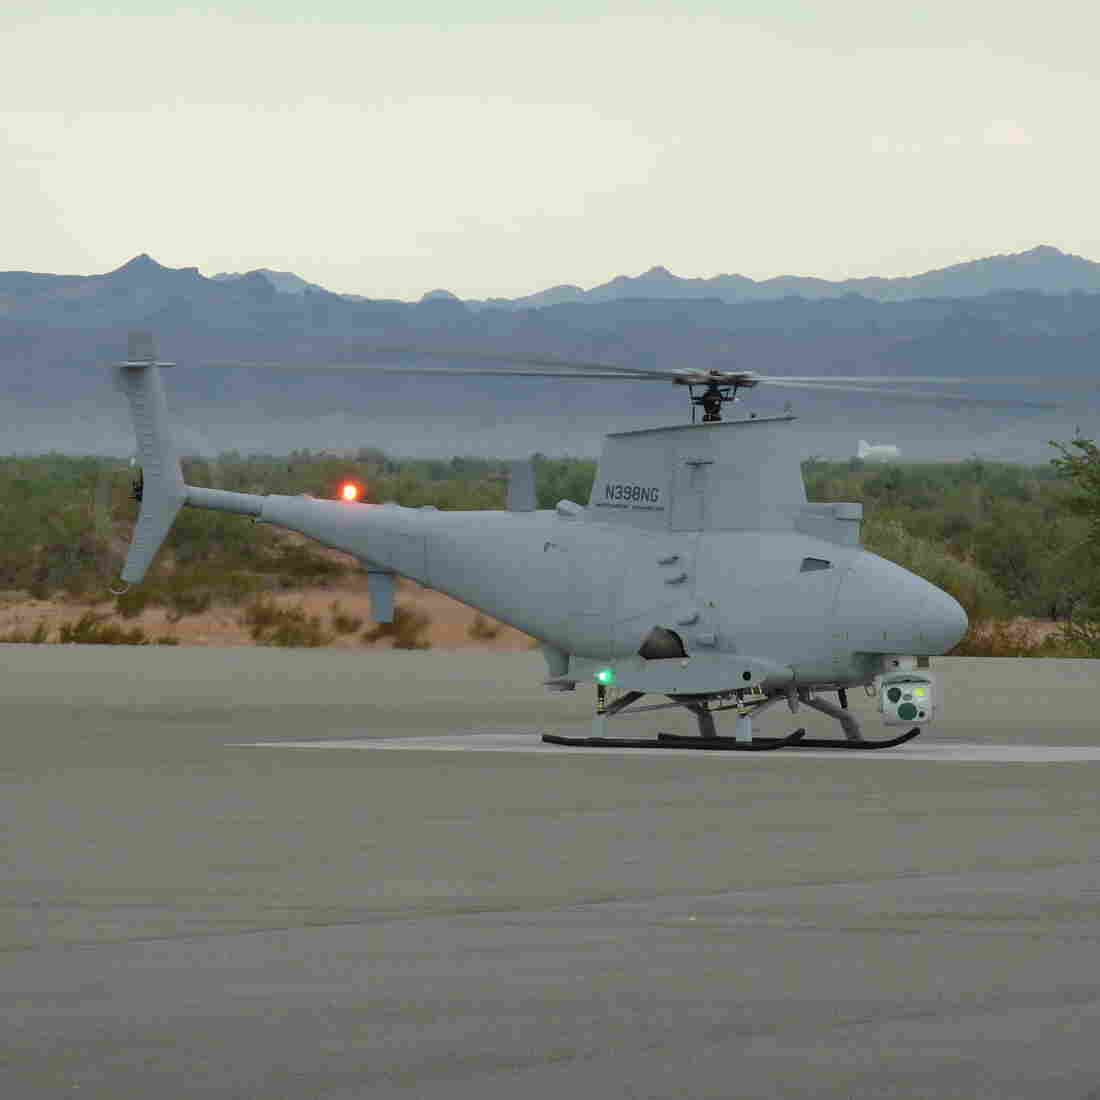 A photo of the MQ-8B, provided by Northrop Grumman.